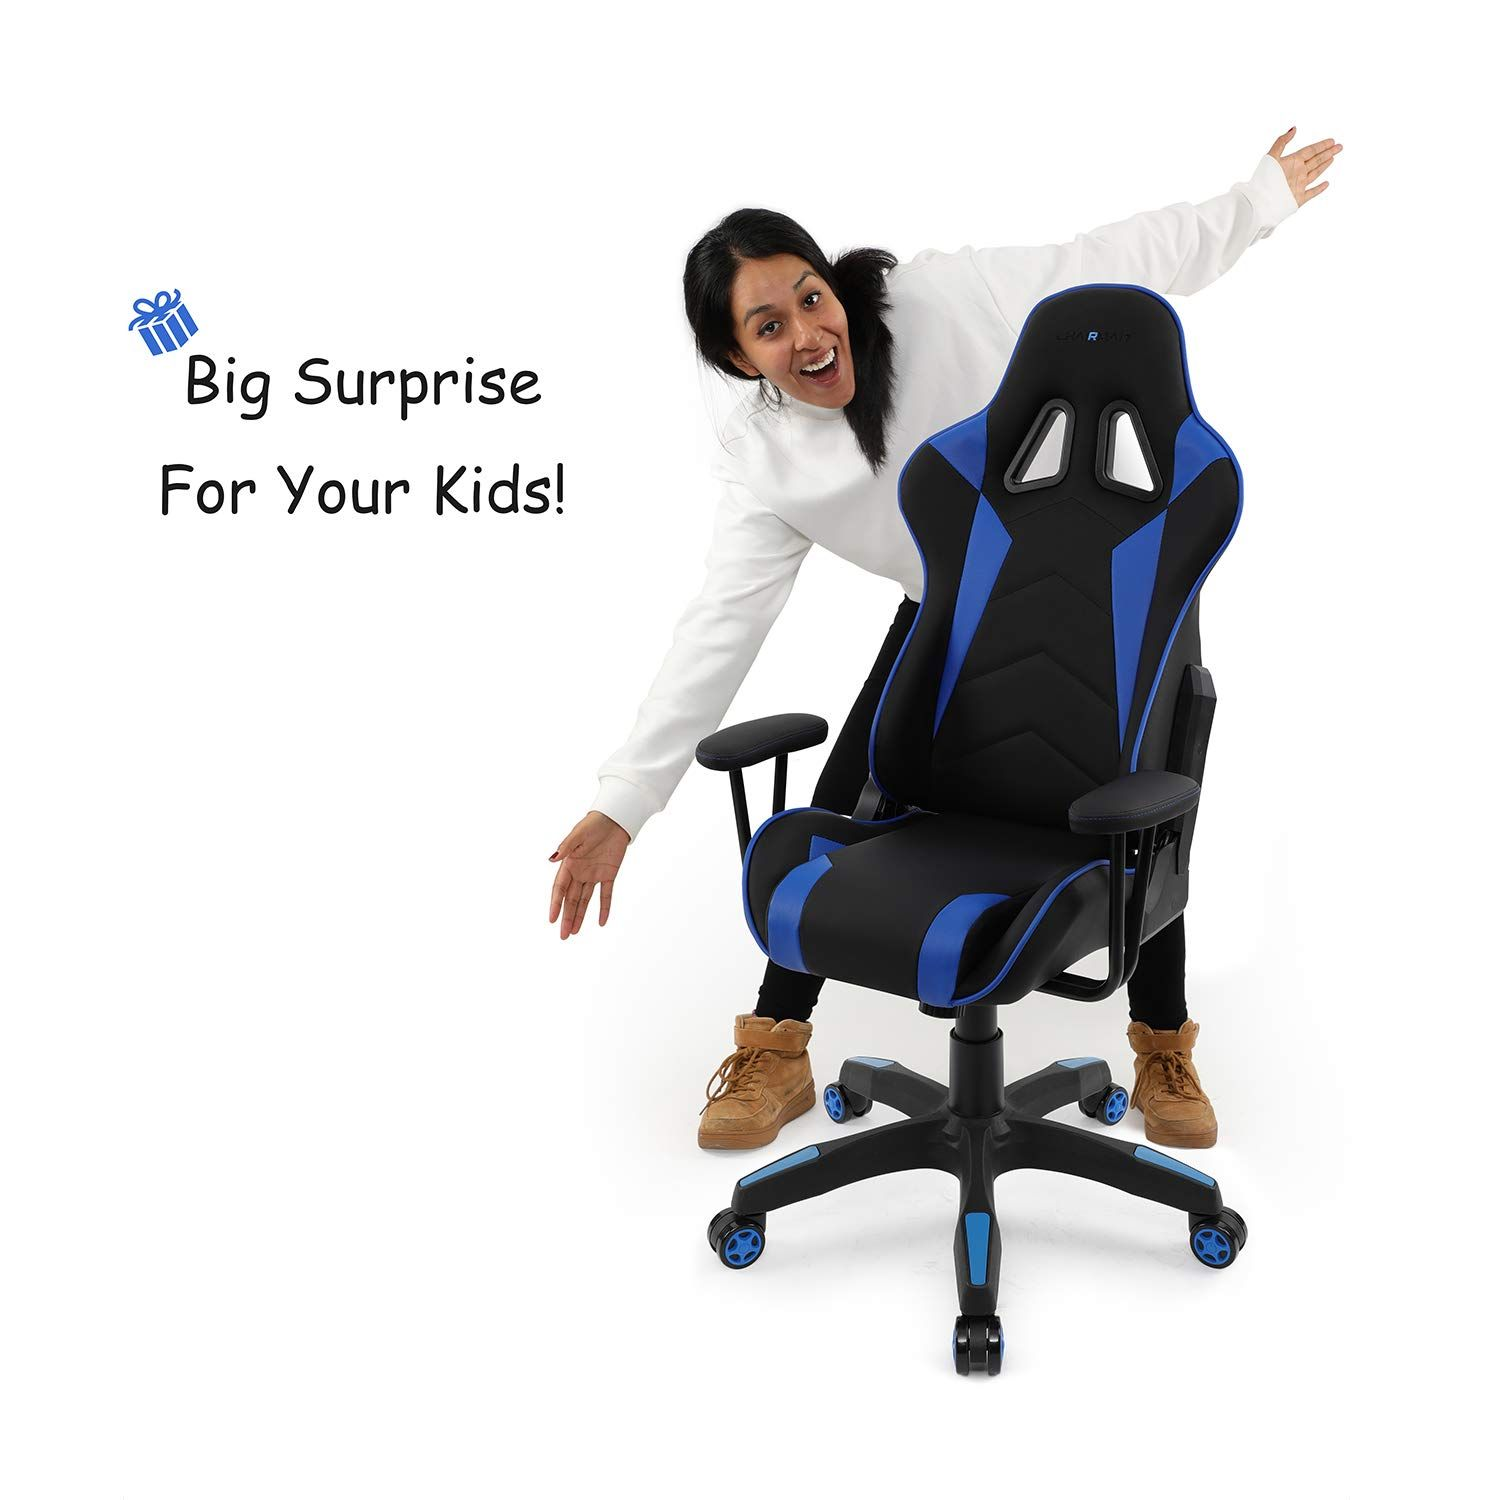 Fenix Mini Gaming Racing Chair Ergonomic Adjustable Skinfriendly Vinyl Kids Children Chair Special Design As Momhugging Blue L Kids Chairs Racing Chair Kids